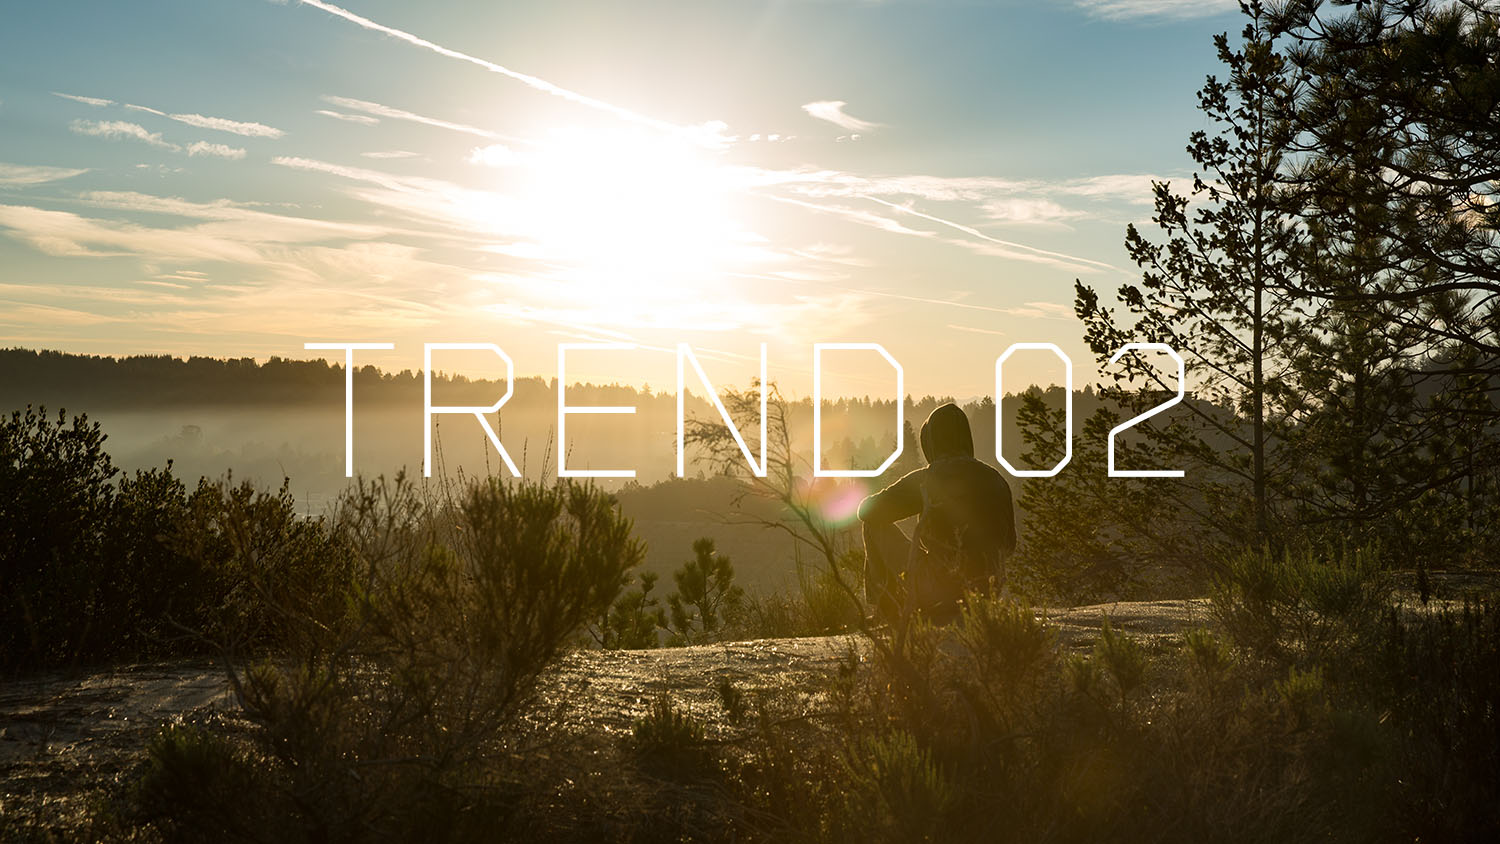 Trendreport 5 digitale Marketing Trends 2020 - 2022, Trend 2